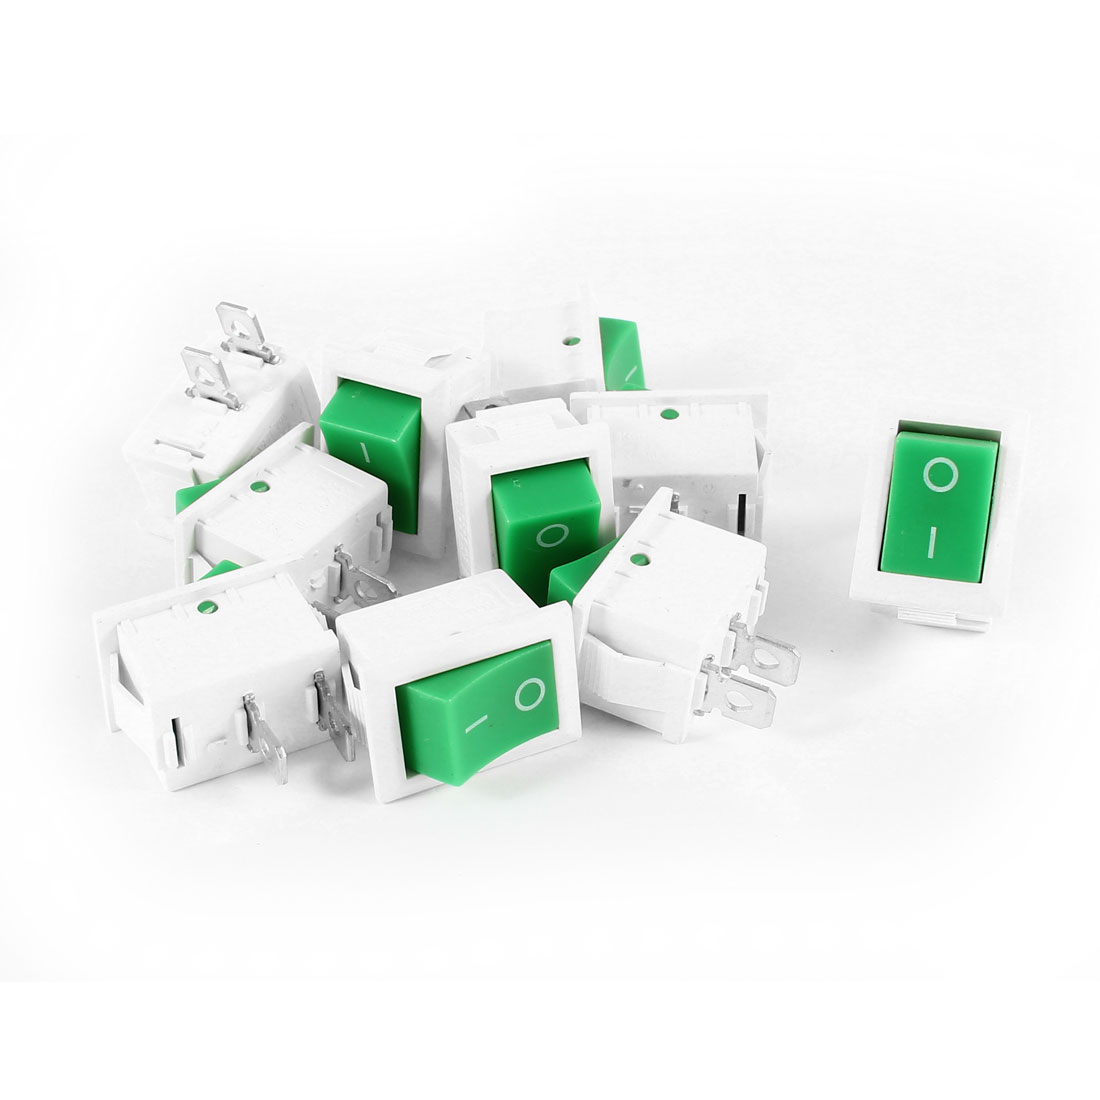 10 Pcs KCD1 AC 250V 6A 125V 10A 2Pin SPST Power ON/OFF Panel Mount Rocker Switch Green White